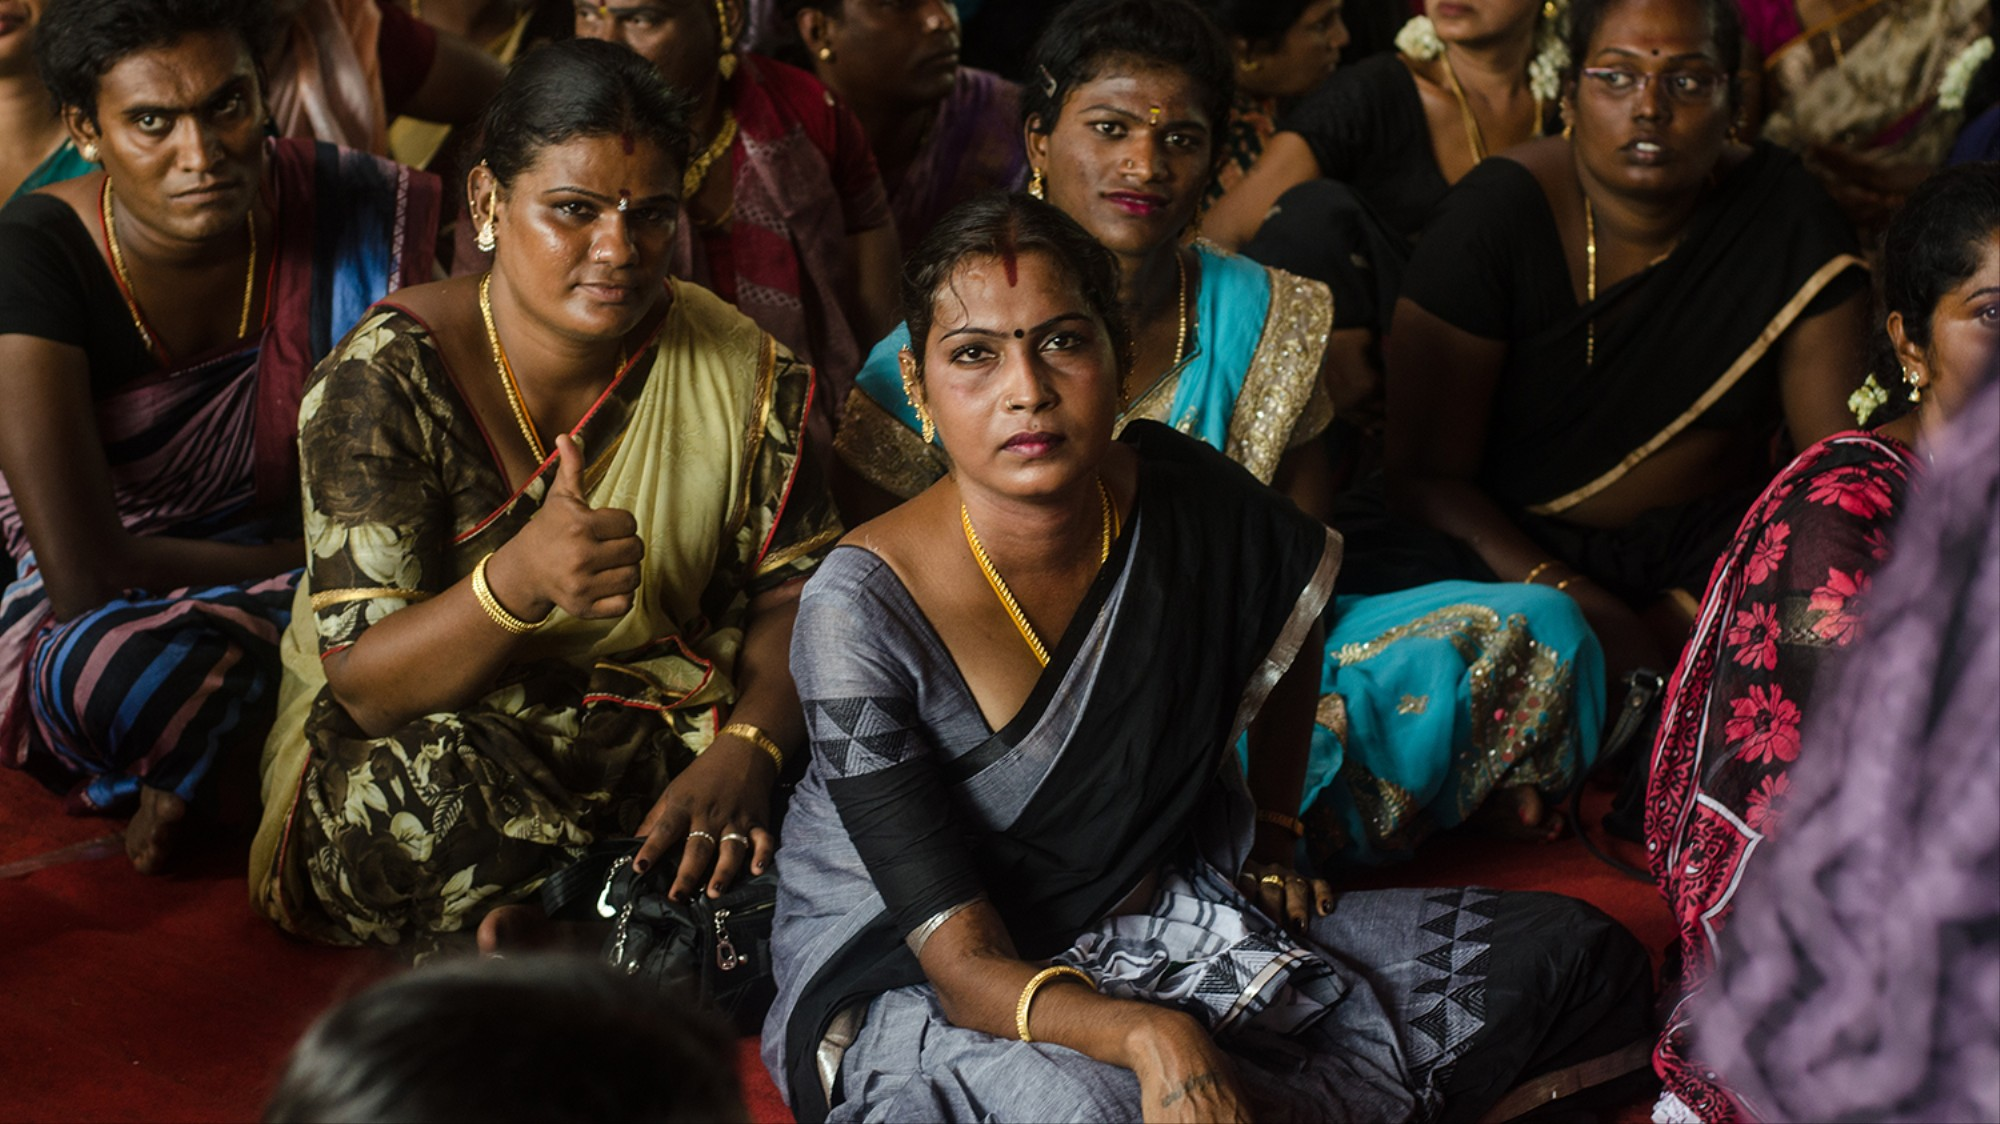 India's Transgender Hijra Community Searches for Acceptance - VICE